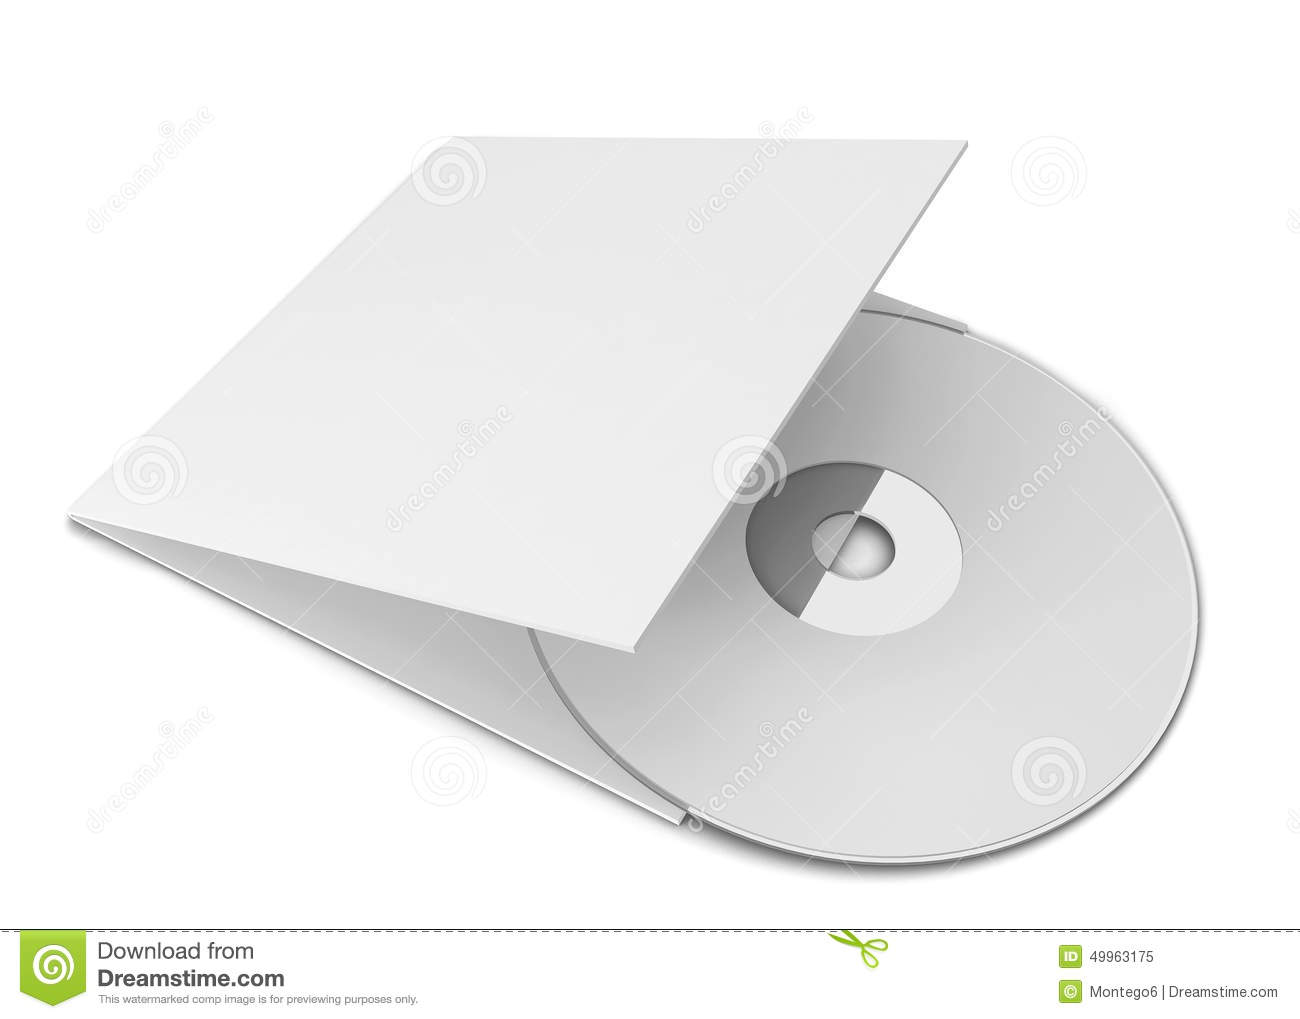 Cover clipart blank BBCpersian7 Cd Image: Illustration cover